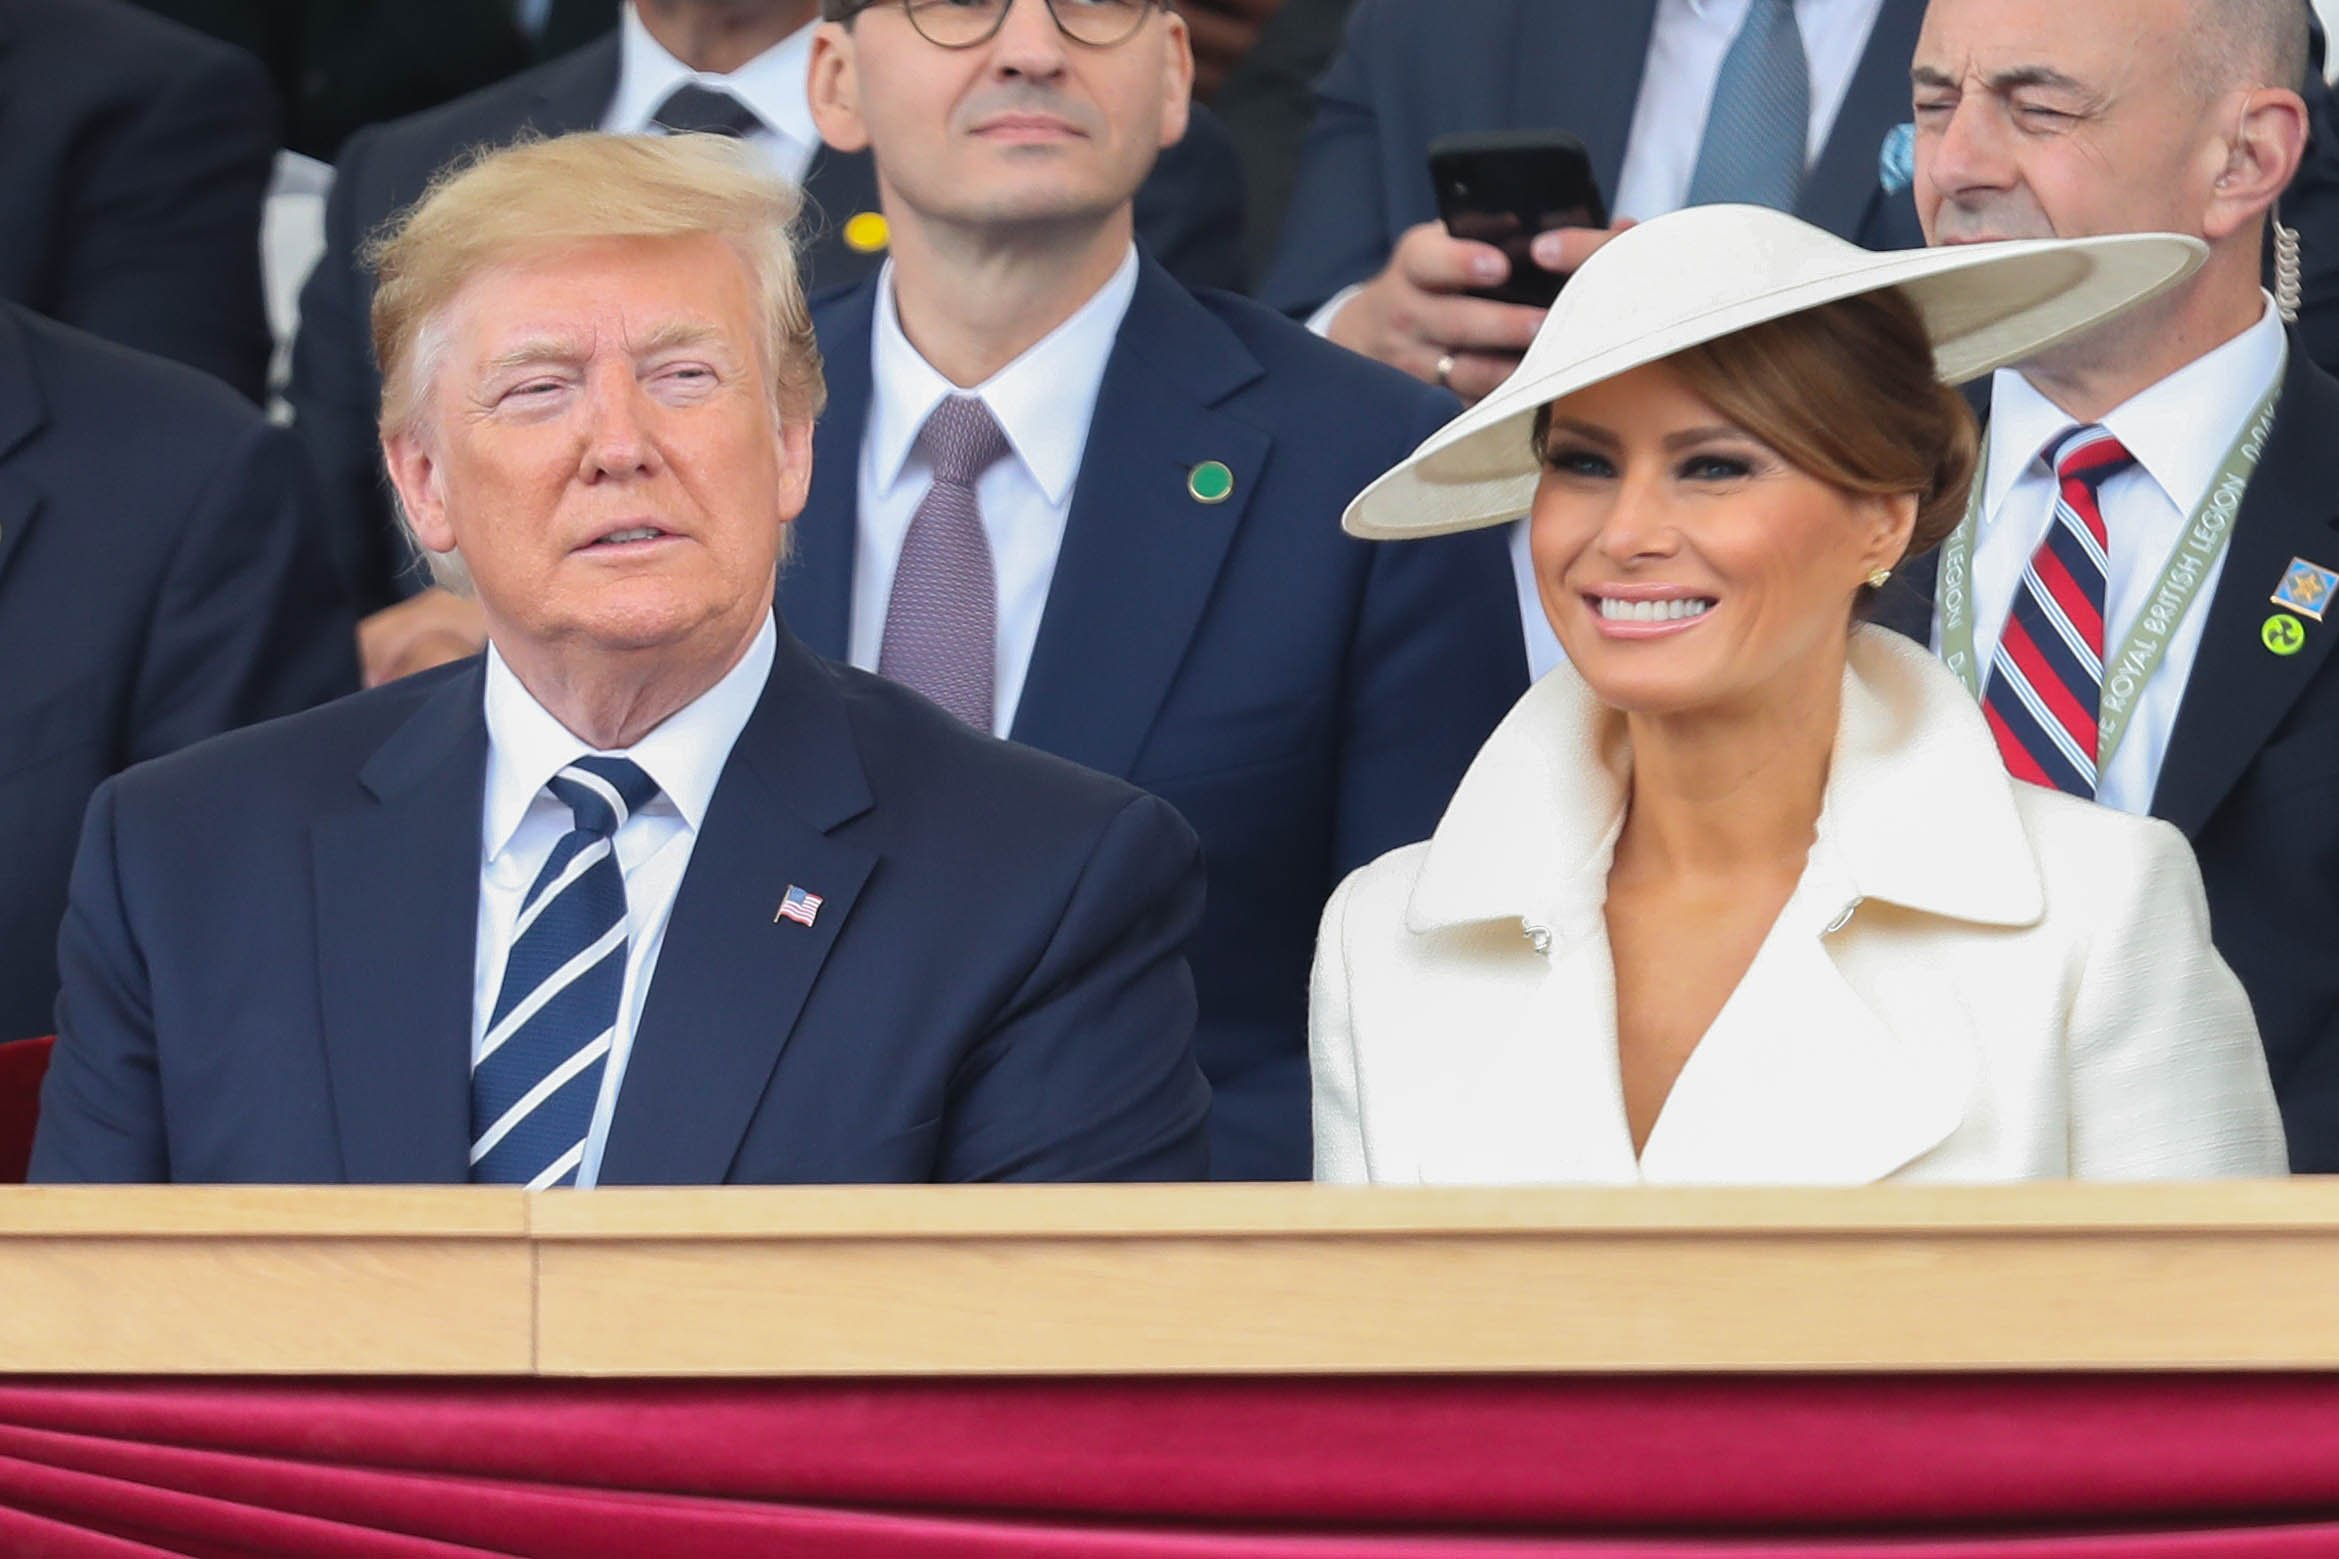 President Trump and Melania Trump at the D-Day Commemorations on June 5, 2019 in Portsmouth, England. | Photo: Getty Images